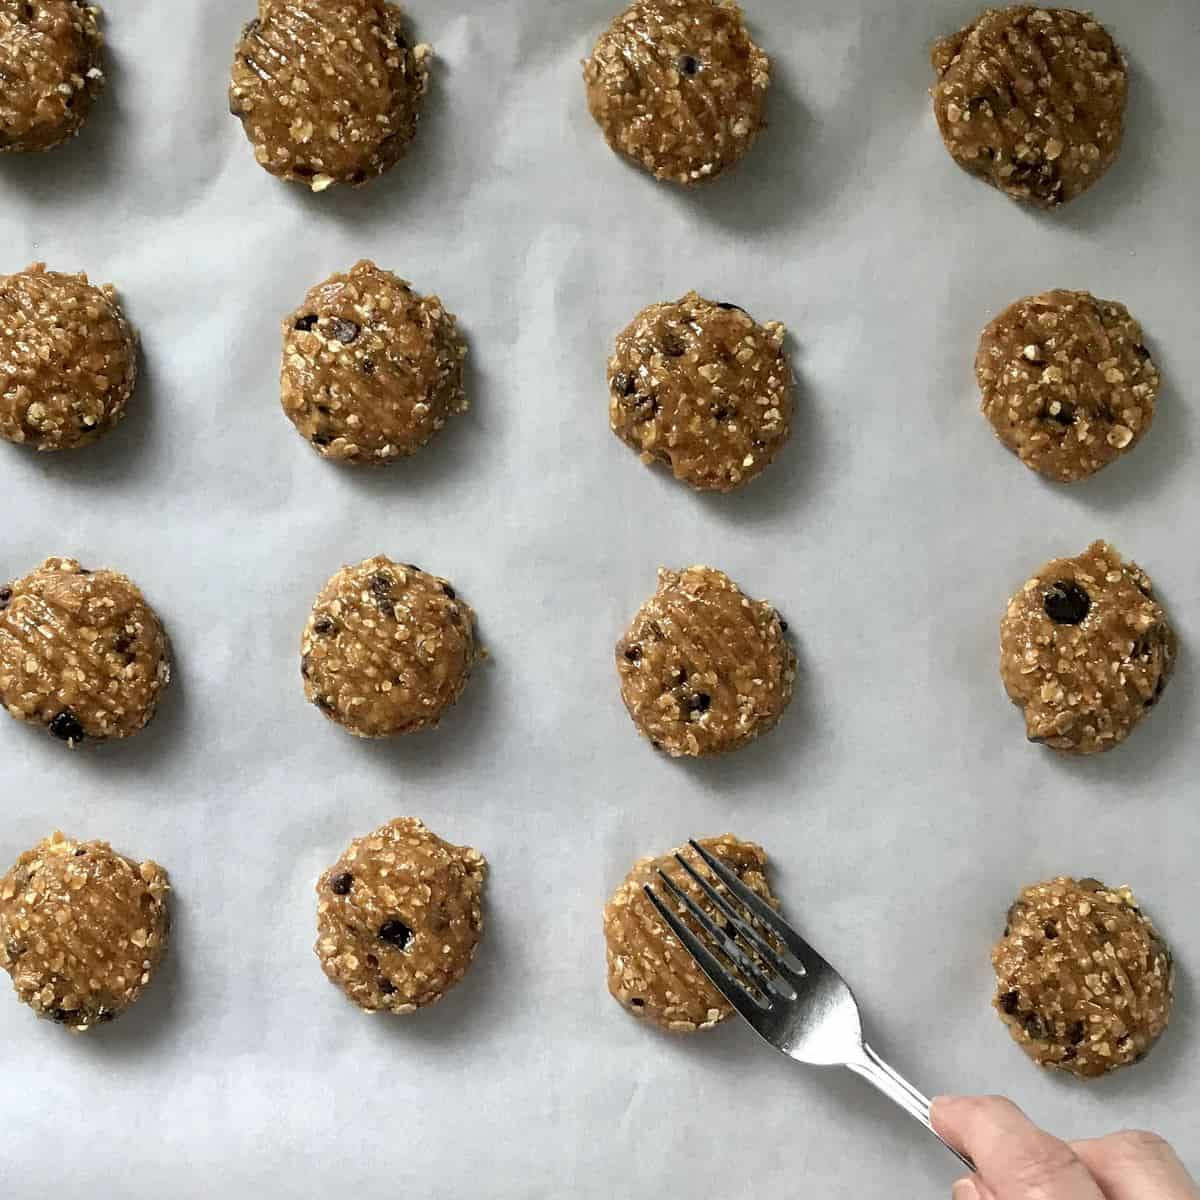 A fork is pressing down on balls of cookie dough.